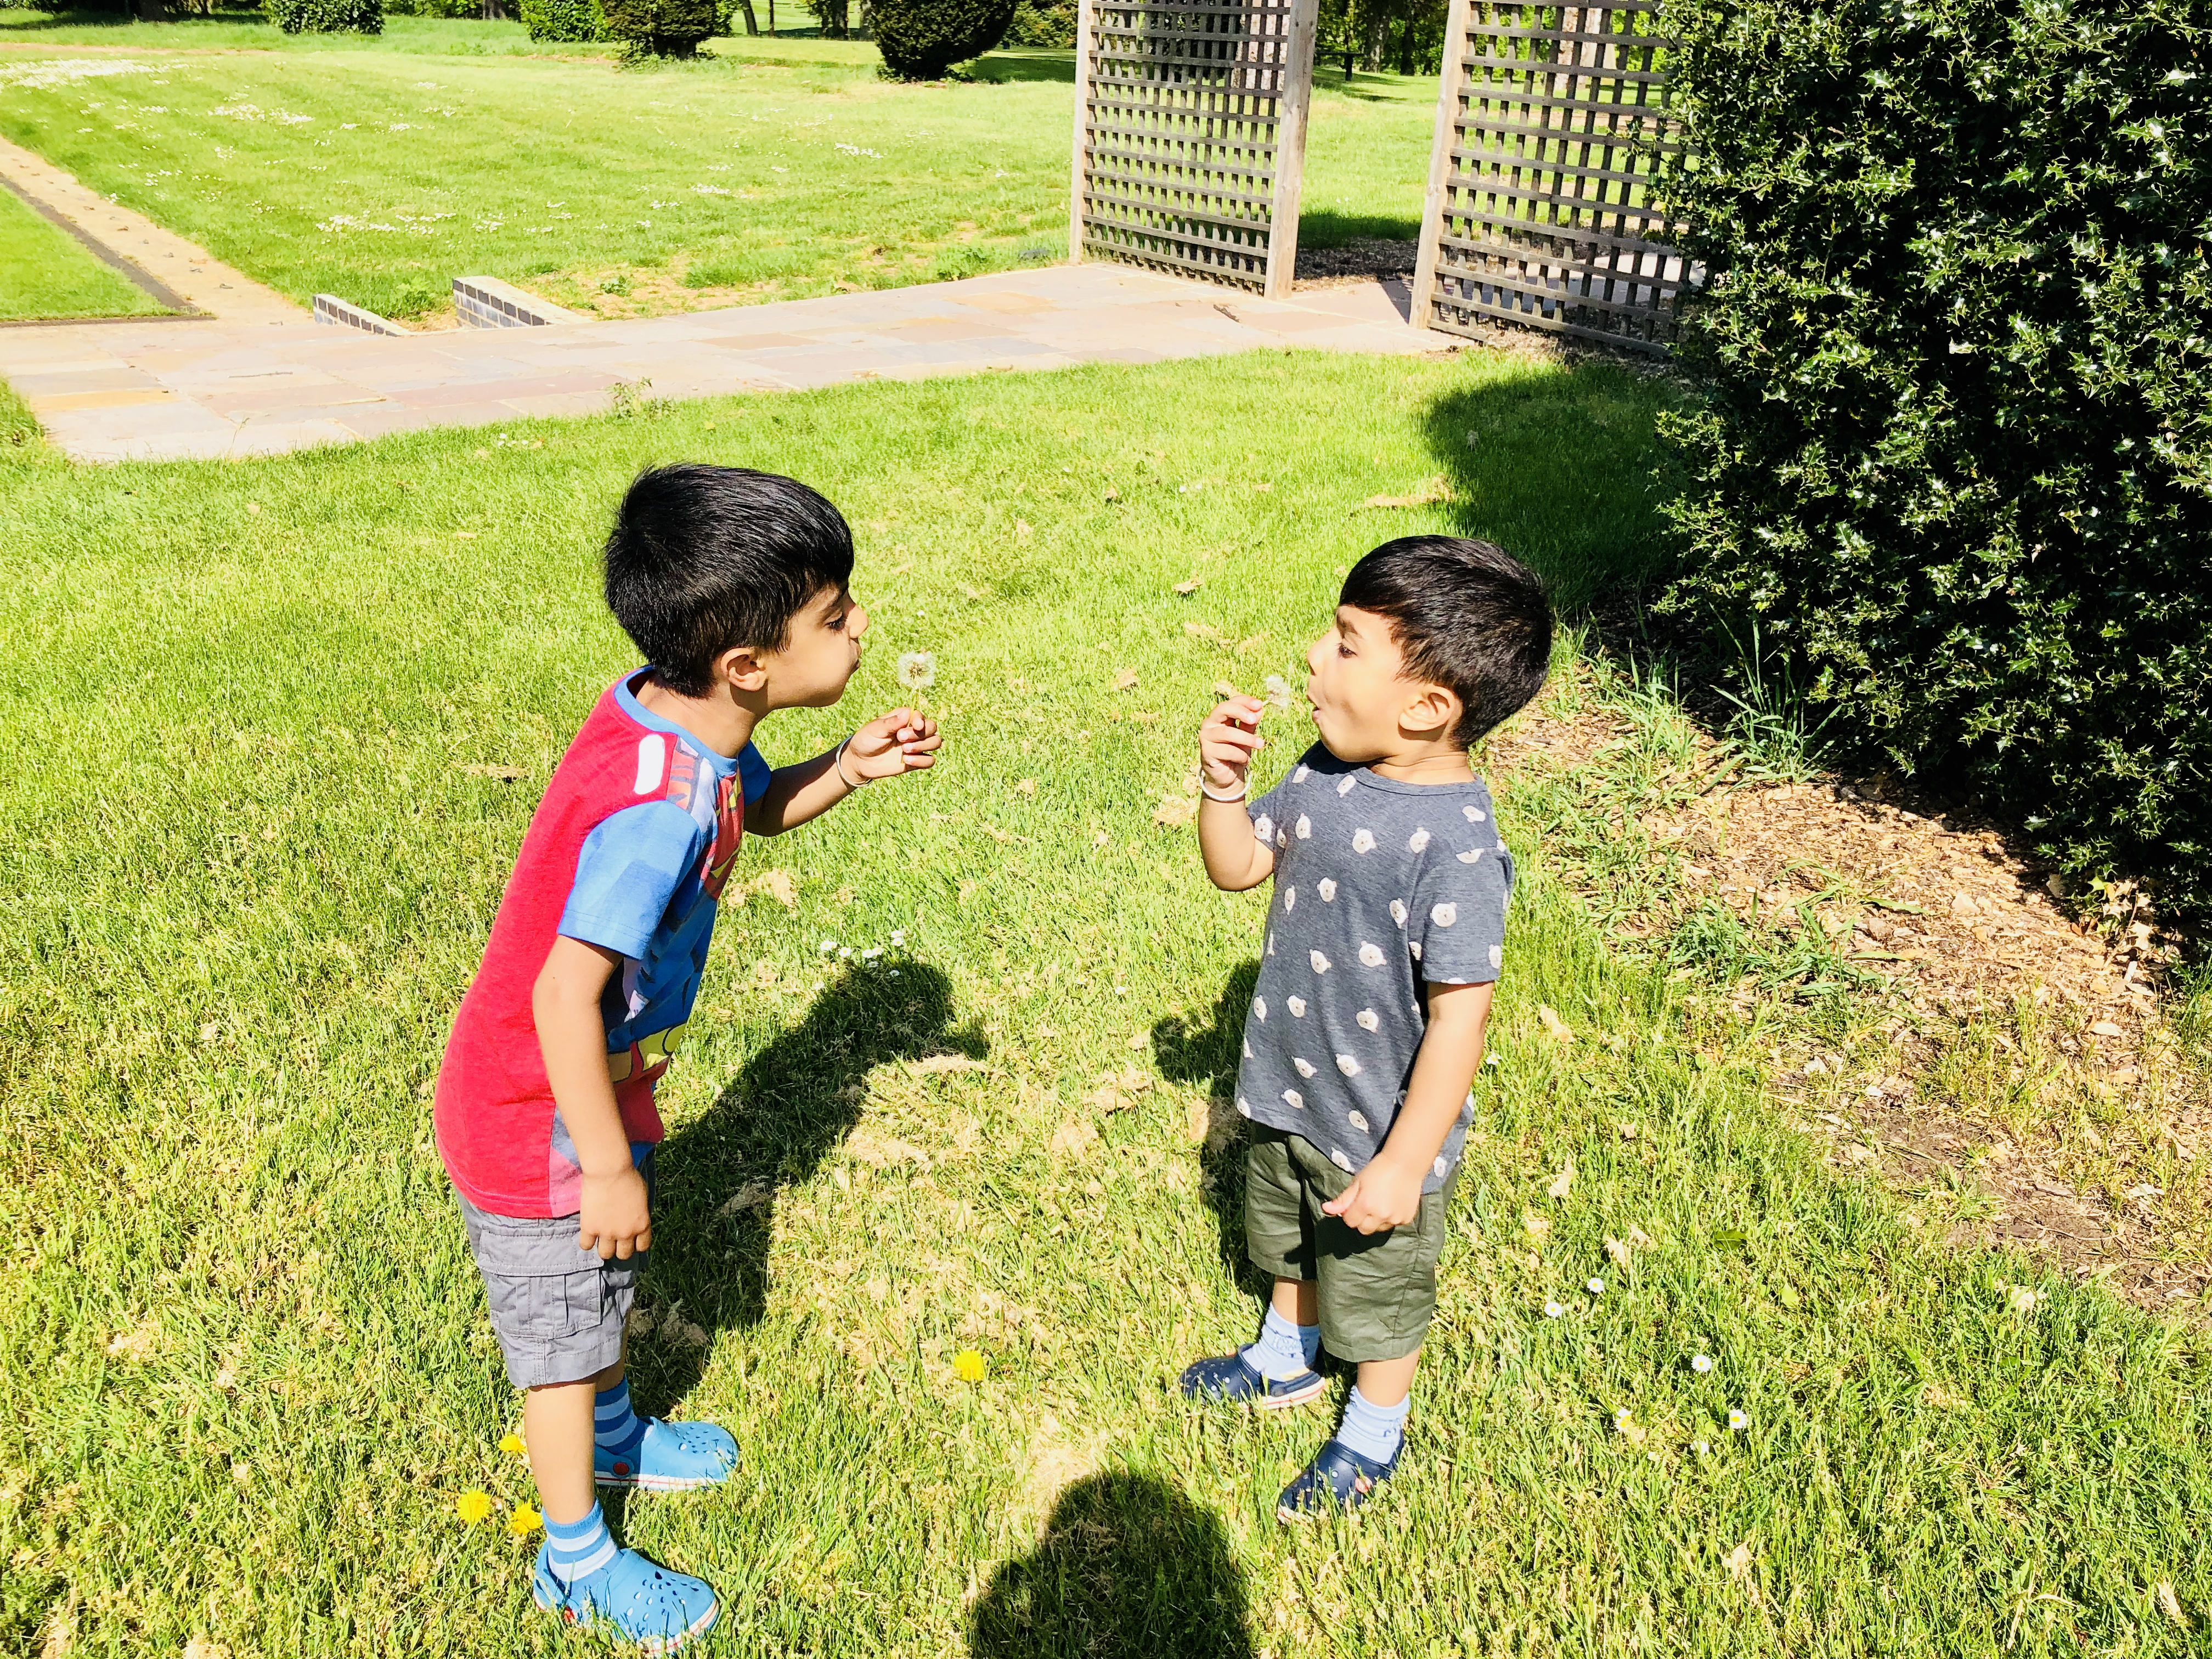 two brothers blowing dandelion flowers in bright clothes